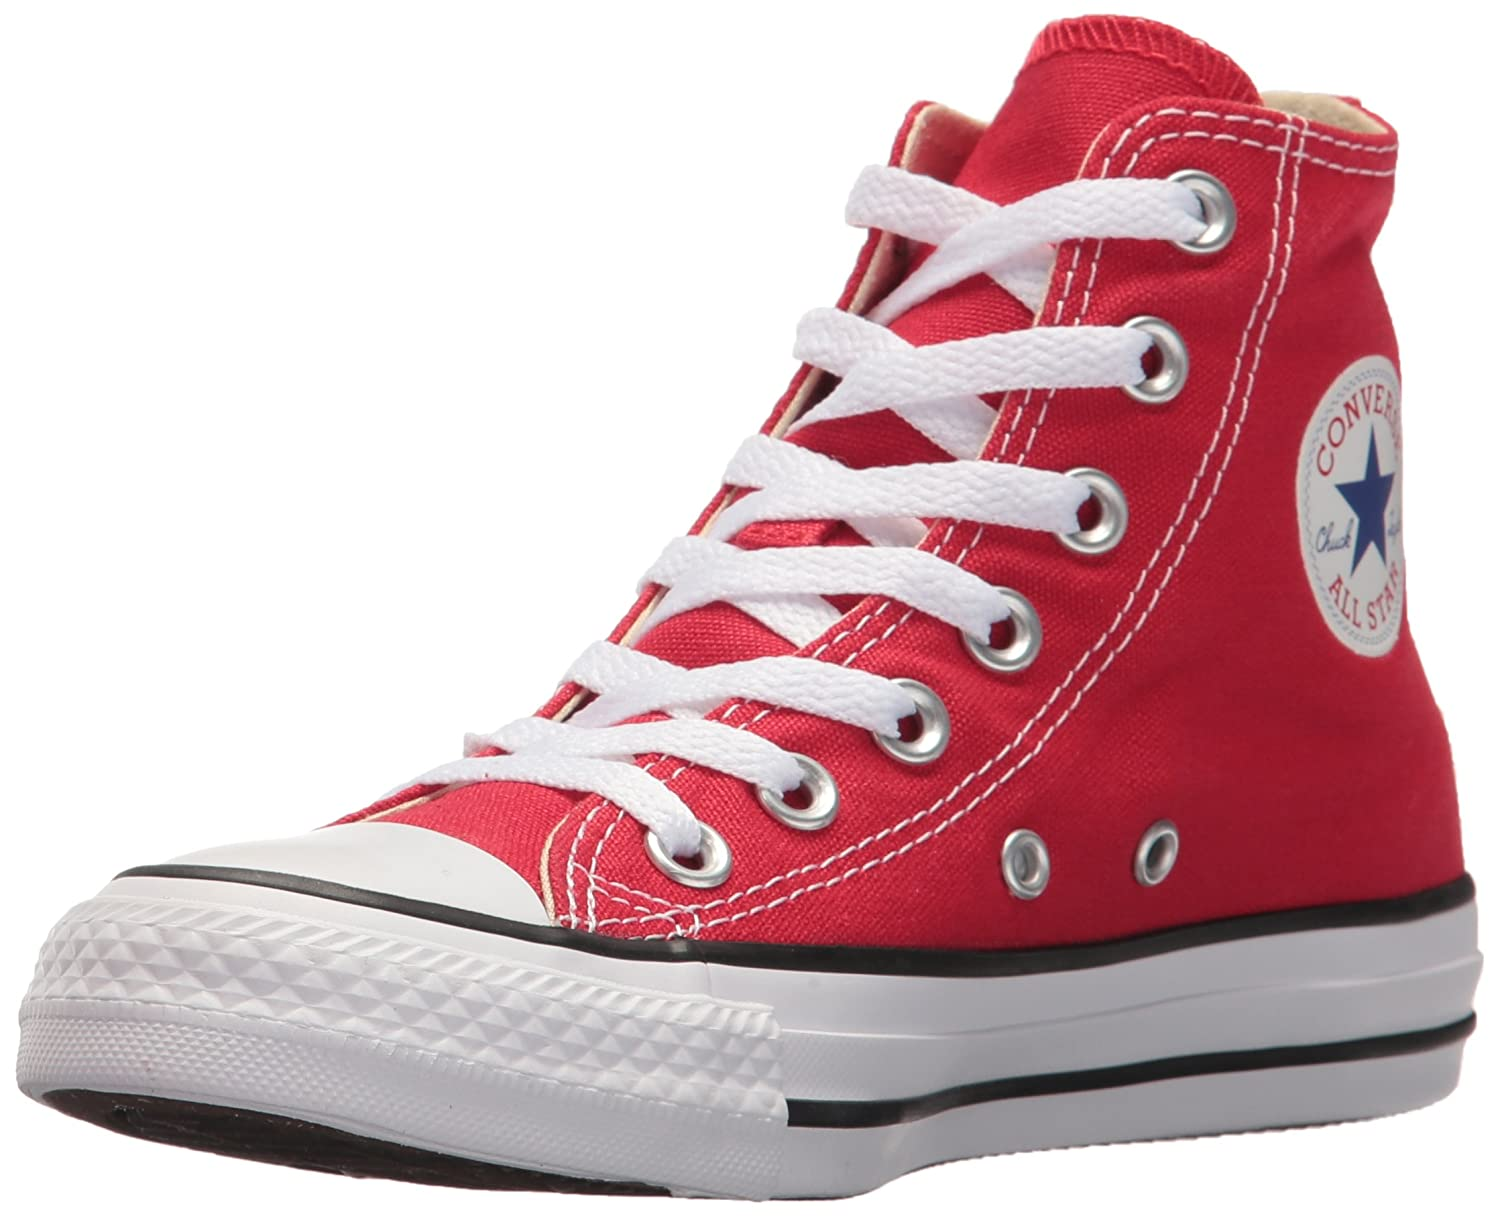 1d6ef7f58a9e7 Converse Unisex Chuck Taylor All Star Canvas Hi-Top Trainers